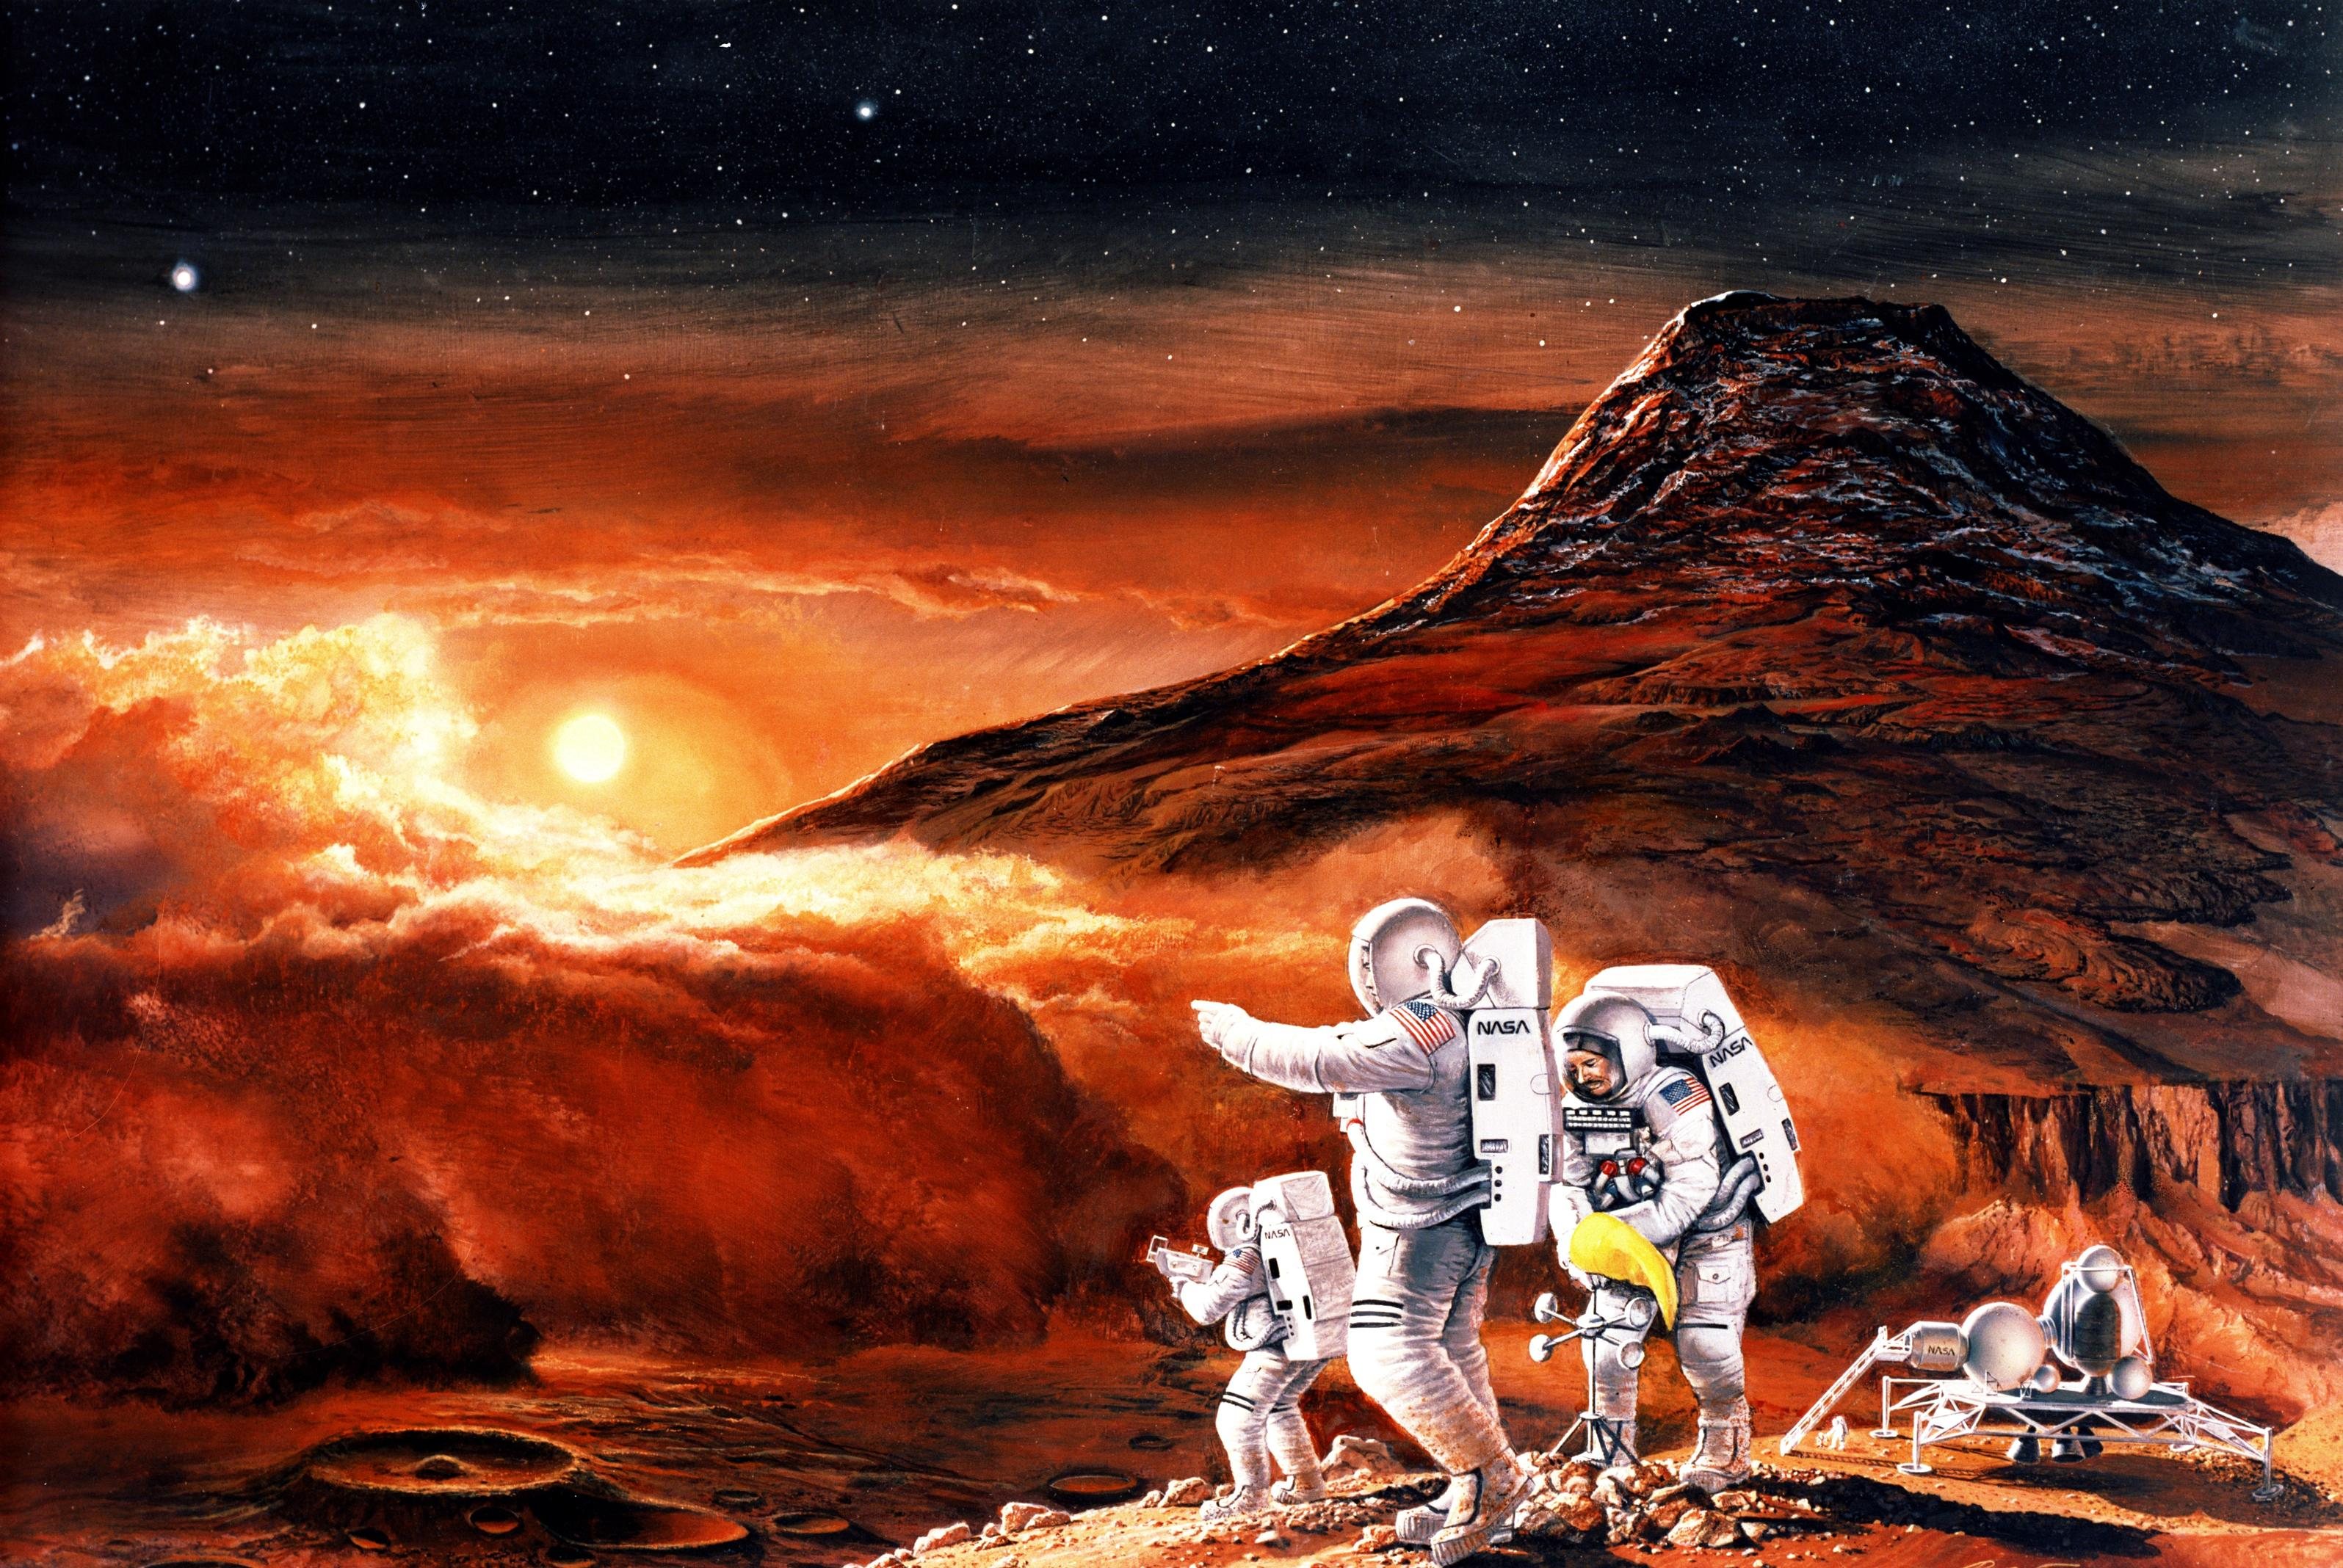 In this artist's concept, astronauts work on Mars' surface with Martian moons Phobos and Deimos visible in the sky.